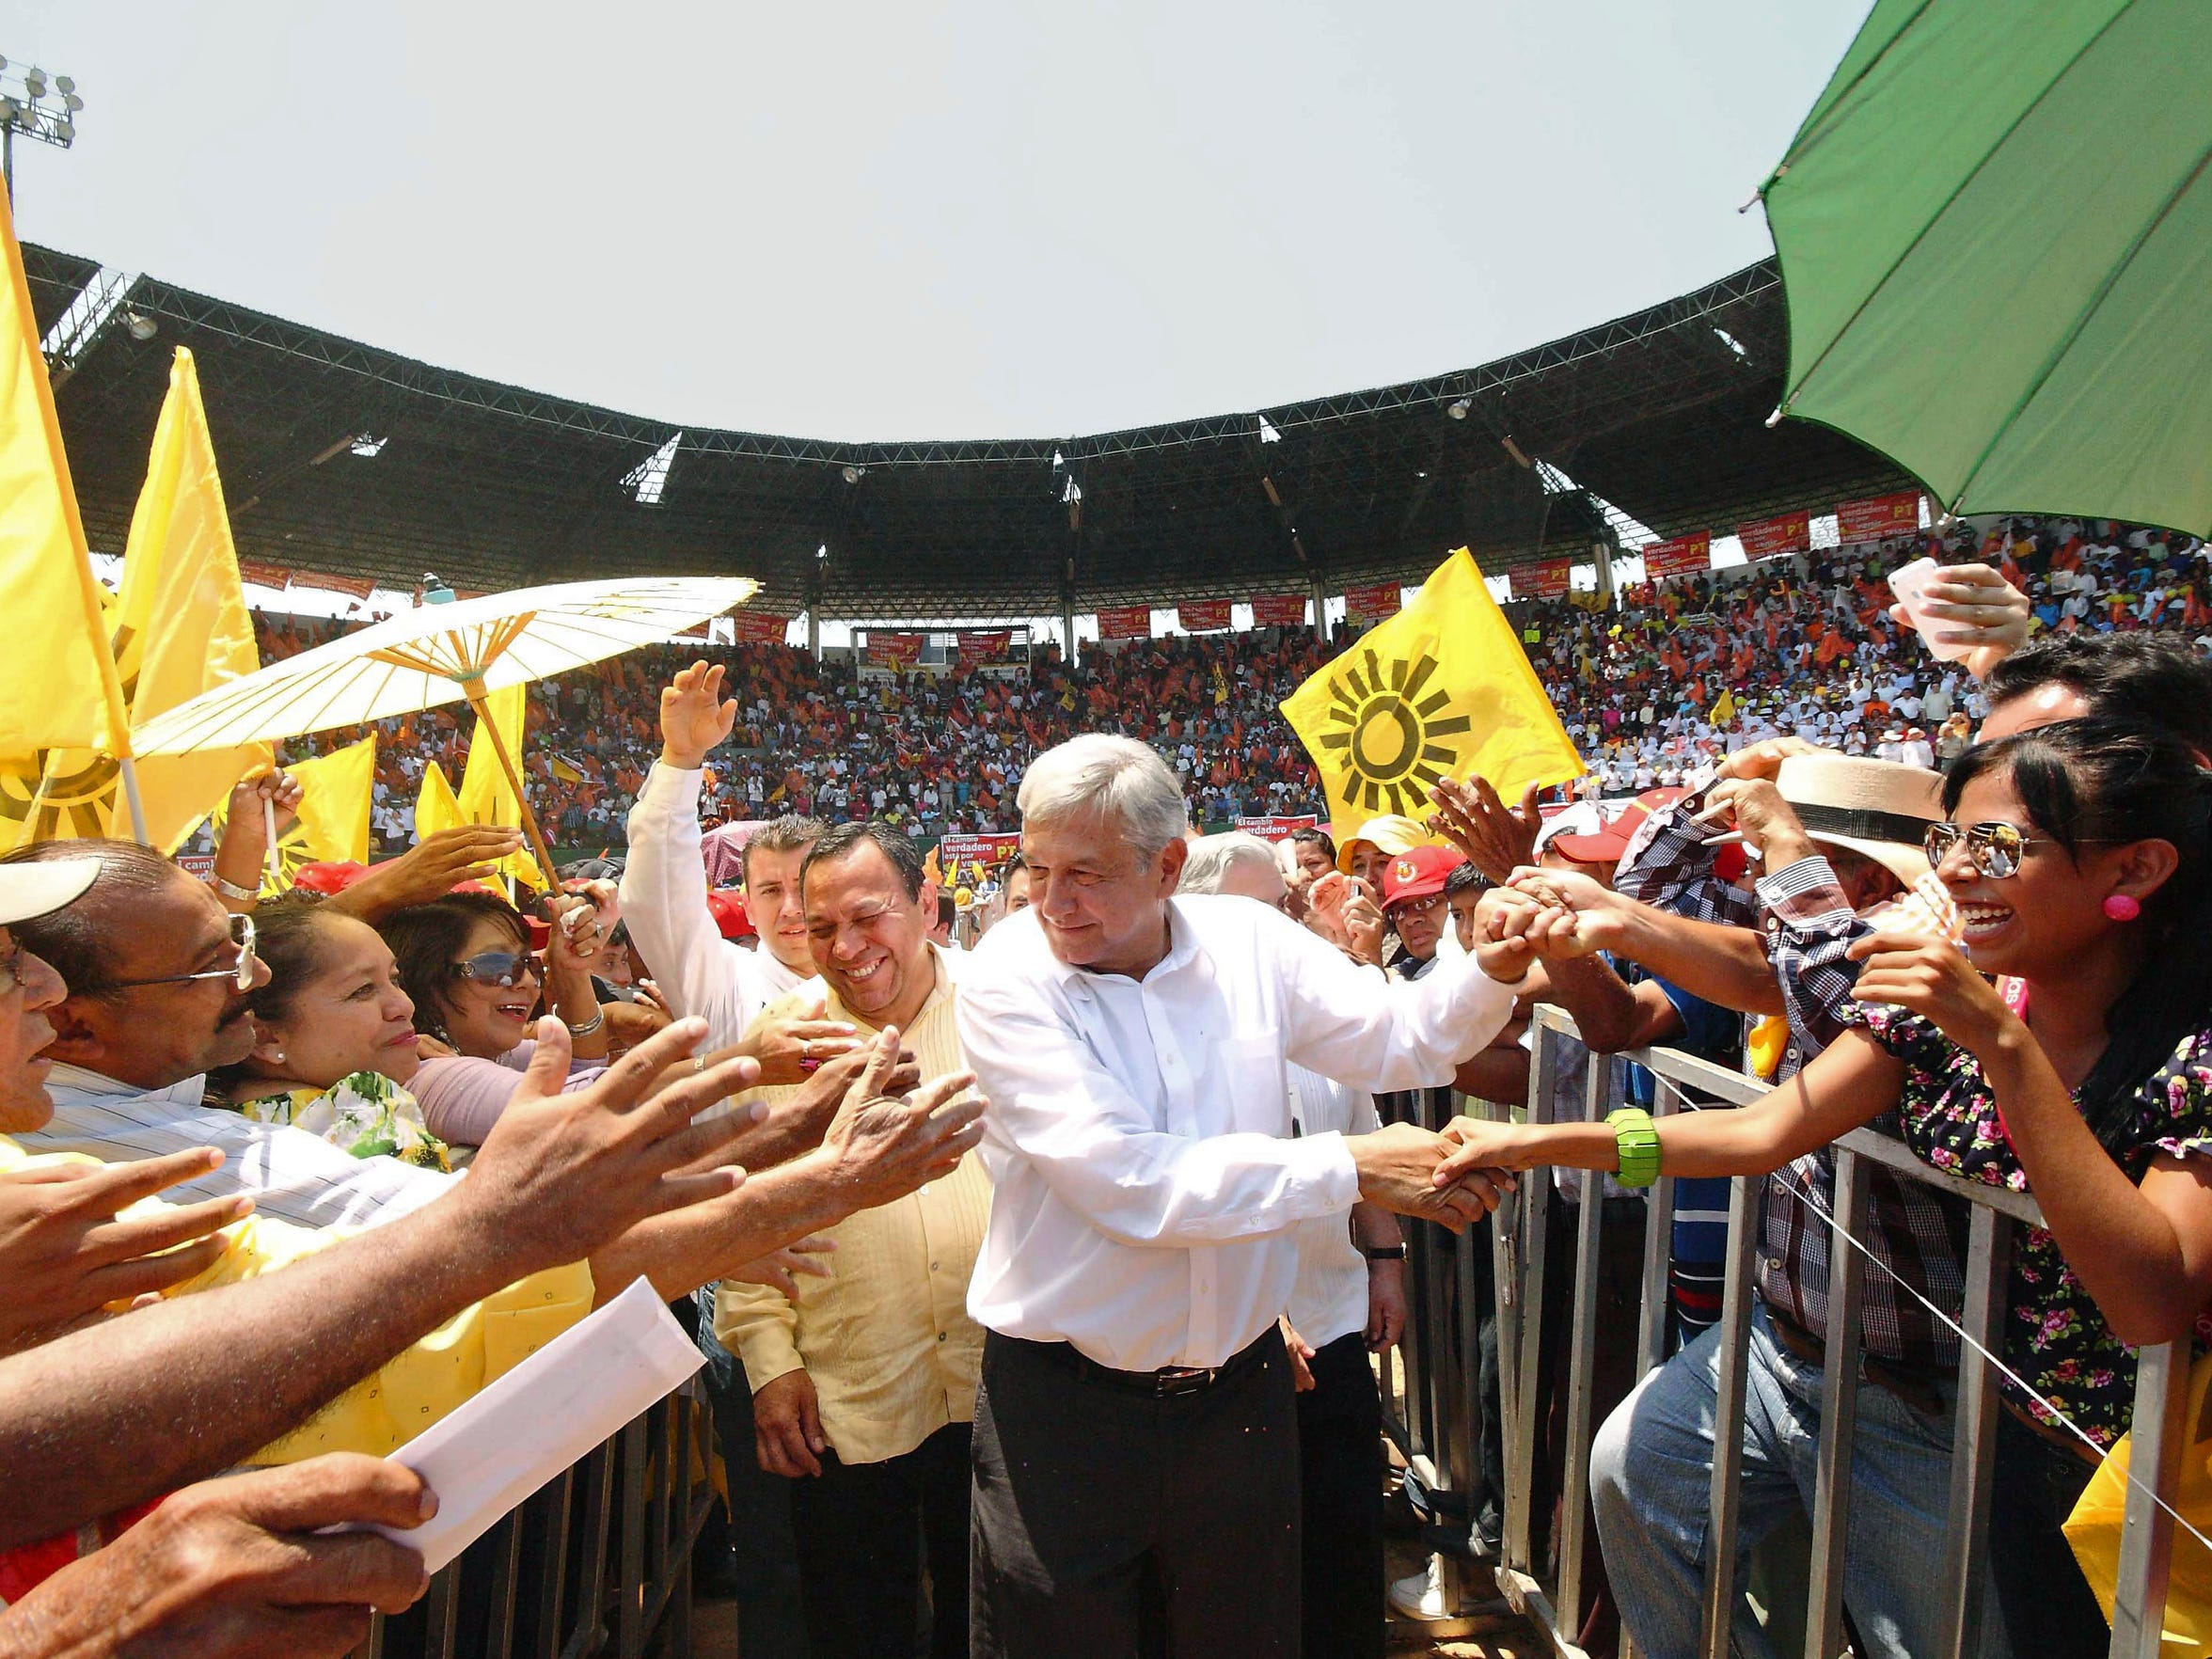 Mexican presidential candidate of the leftist coalition Progressive Movement of Mexico Andres Manuel Lopez Obrador  greets supporters during a first massive event on the launch of his campaign for president, in Macuspana, Tabasco State, Mexico, March 30, 2012.